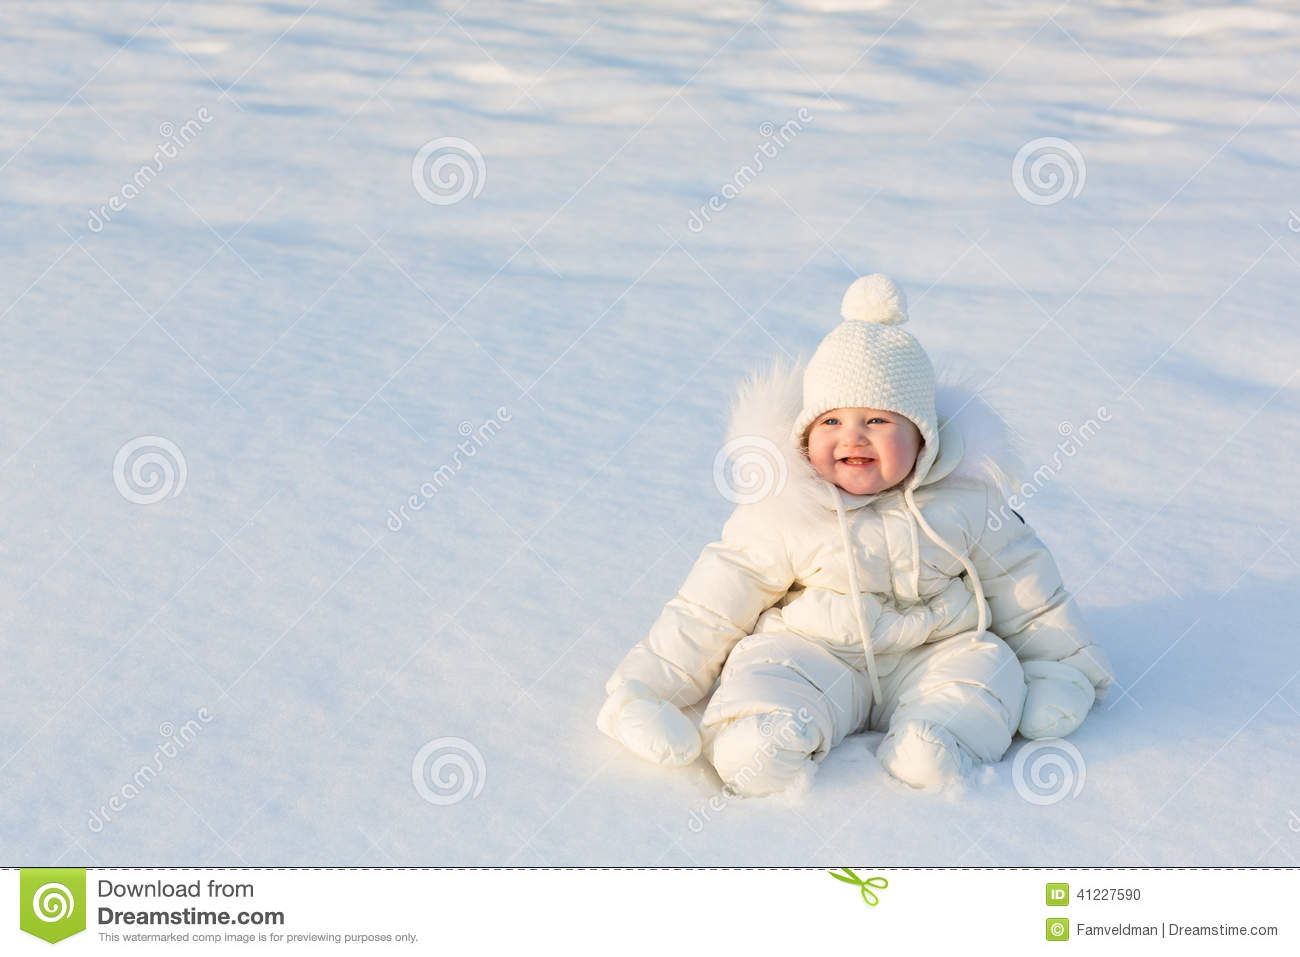 Beautiful Baby In A White Snow Suit Sitting On Fresh Snow